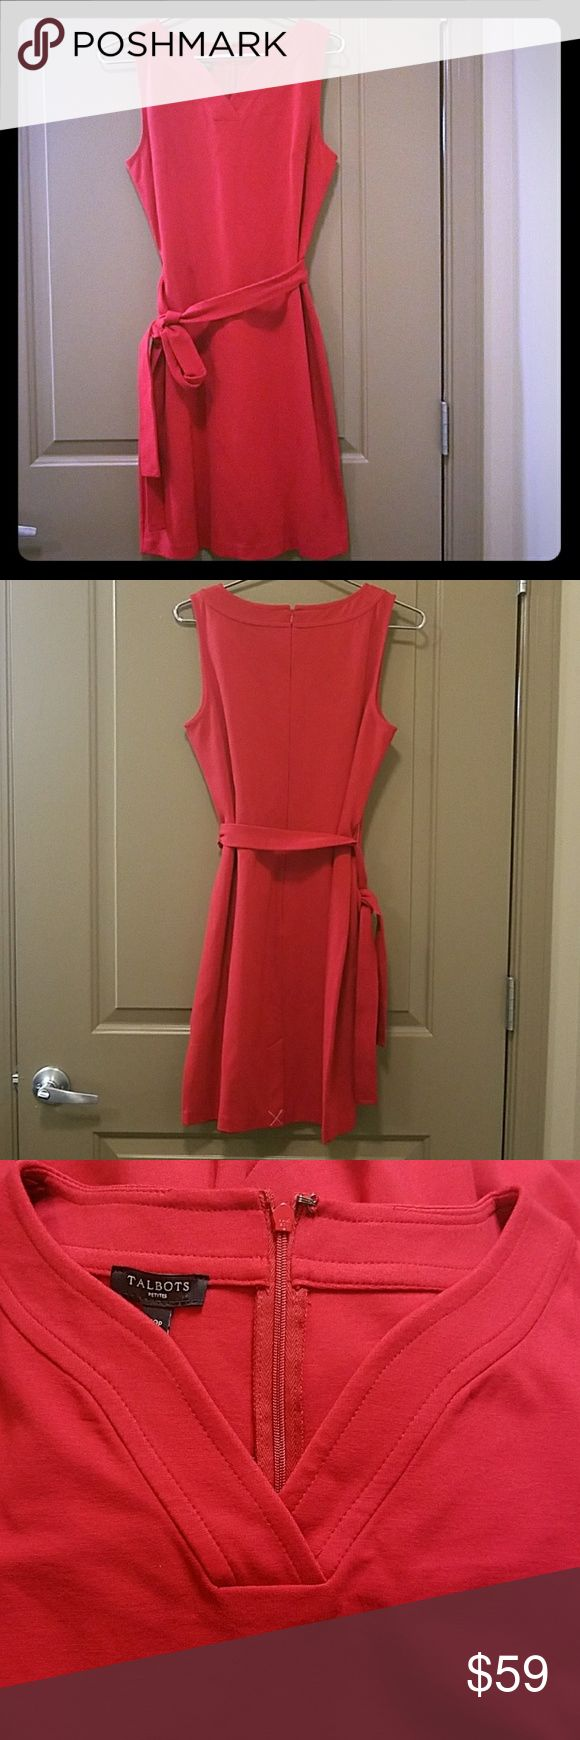 Talbots Belted Sleeveless Red Dress Petite Brand new with tags Talbots red dress with belt, sleevess. Dress is 35 inches laid flat. Talbots Dresses Midi